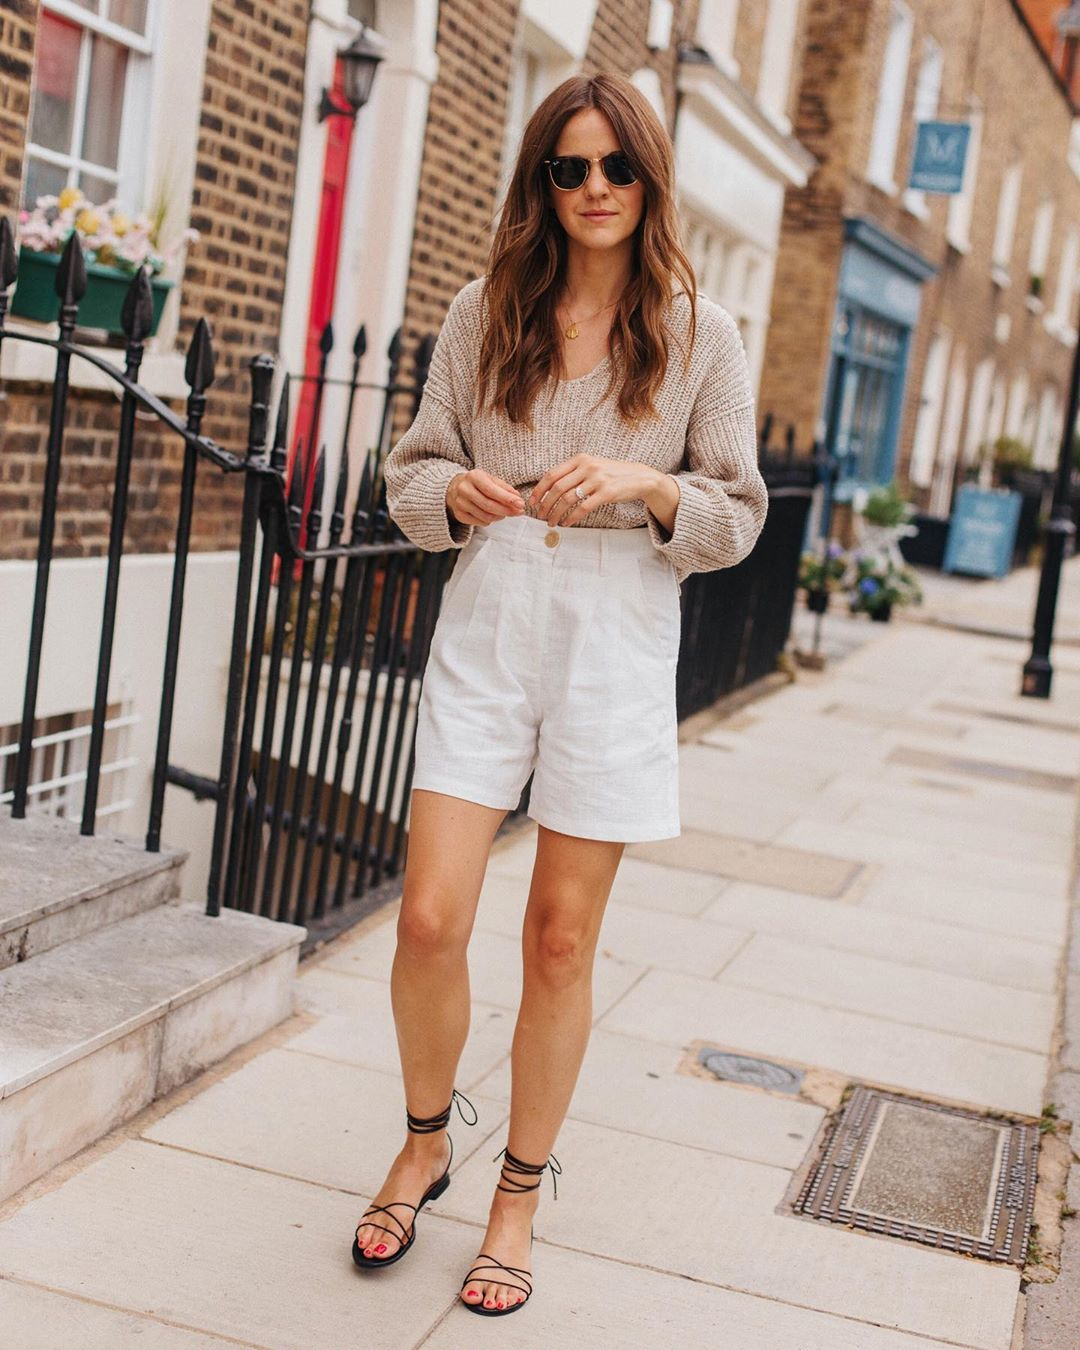 How to Transition Your Shorts Into Fall — Neutral Sweater, White Shorts, Lace-Up Sandals